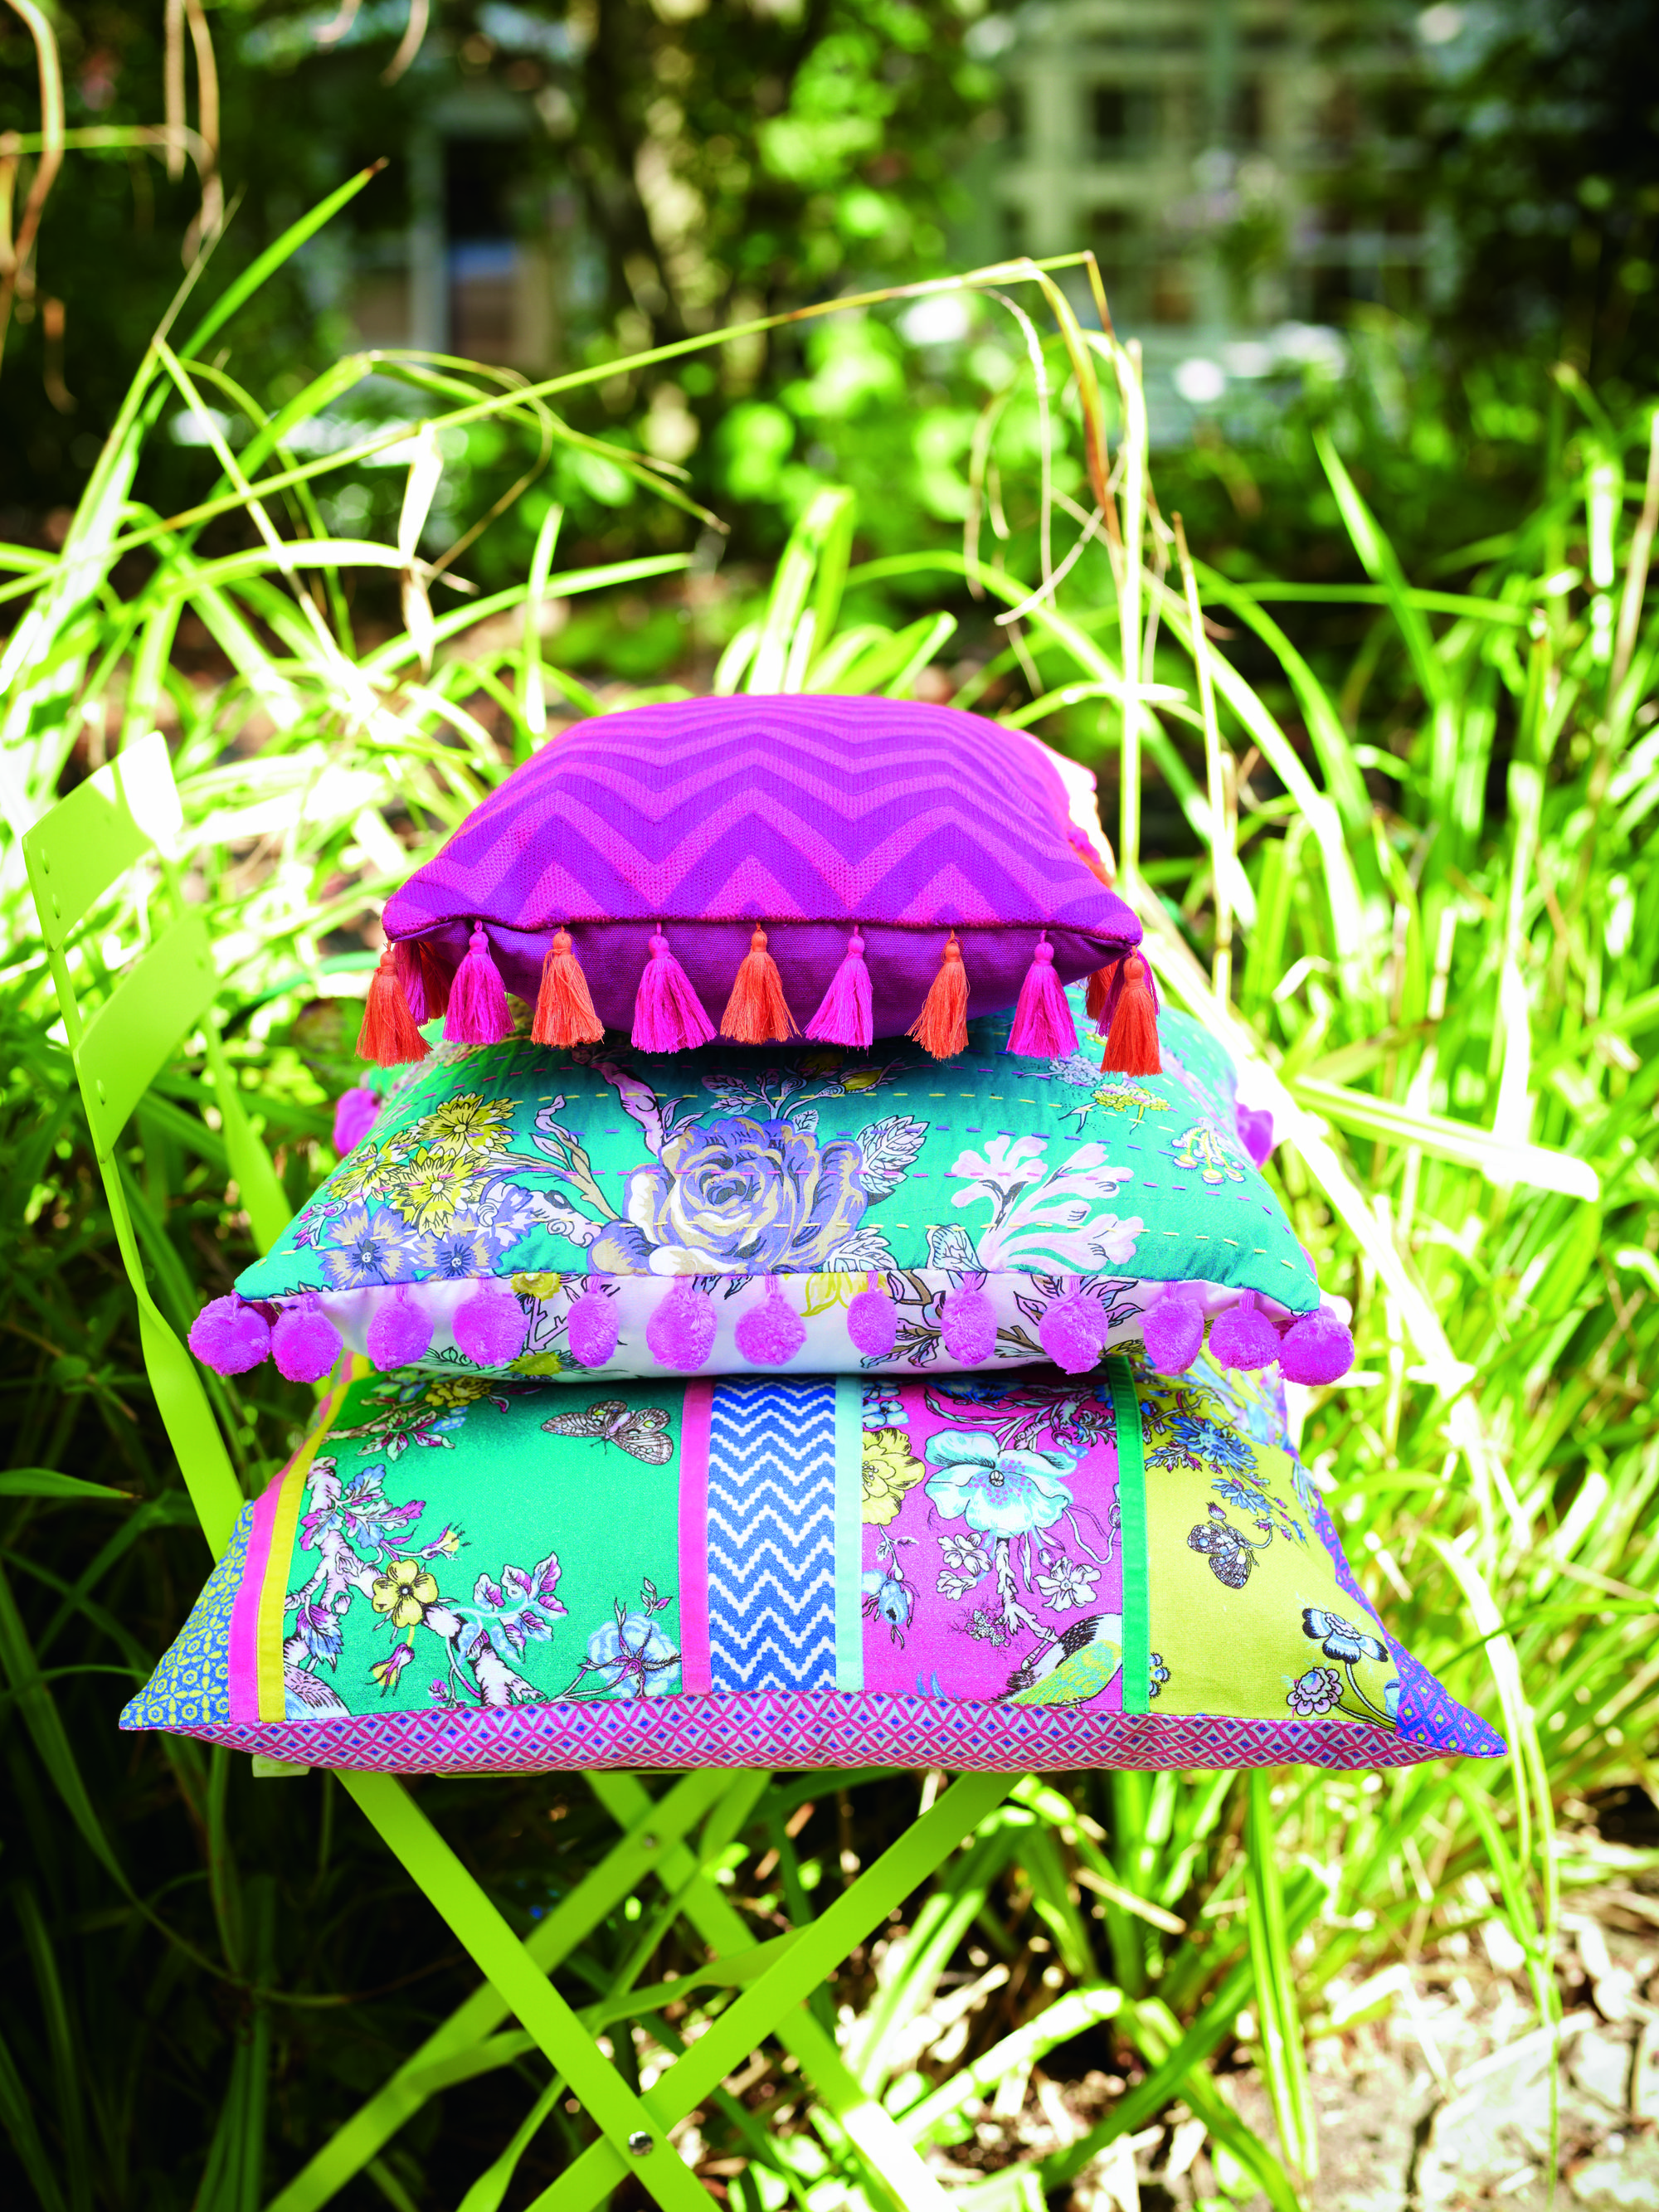 Bright green and pink cushions with tassels and patterns. #home #accessories #designer